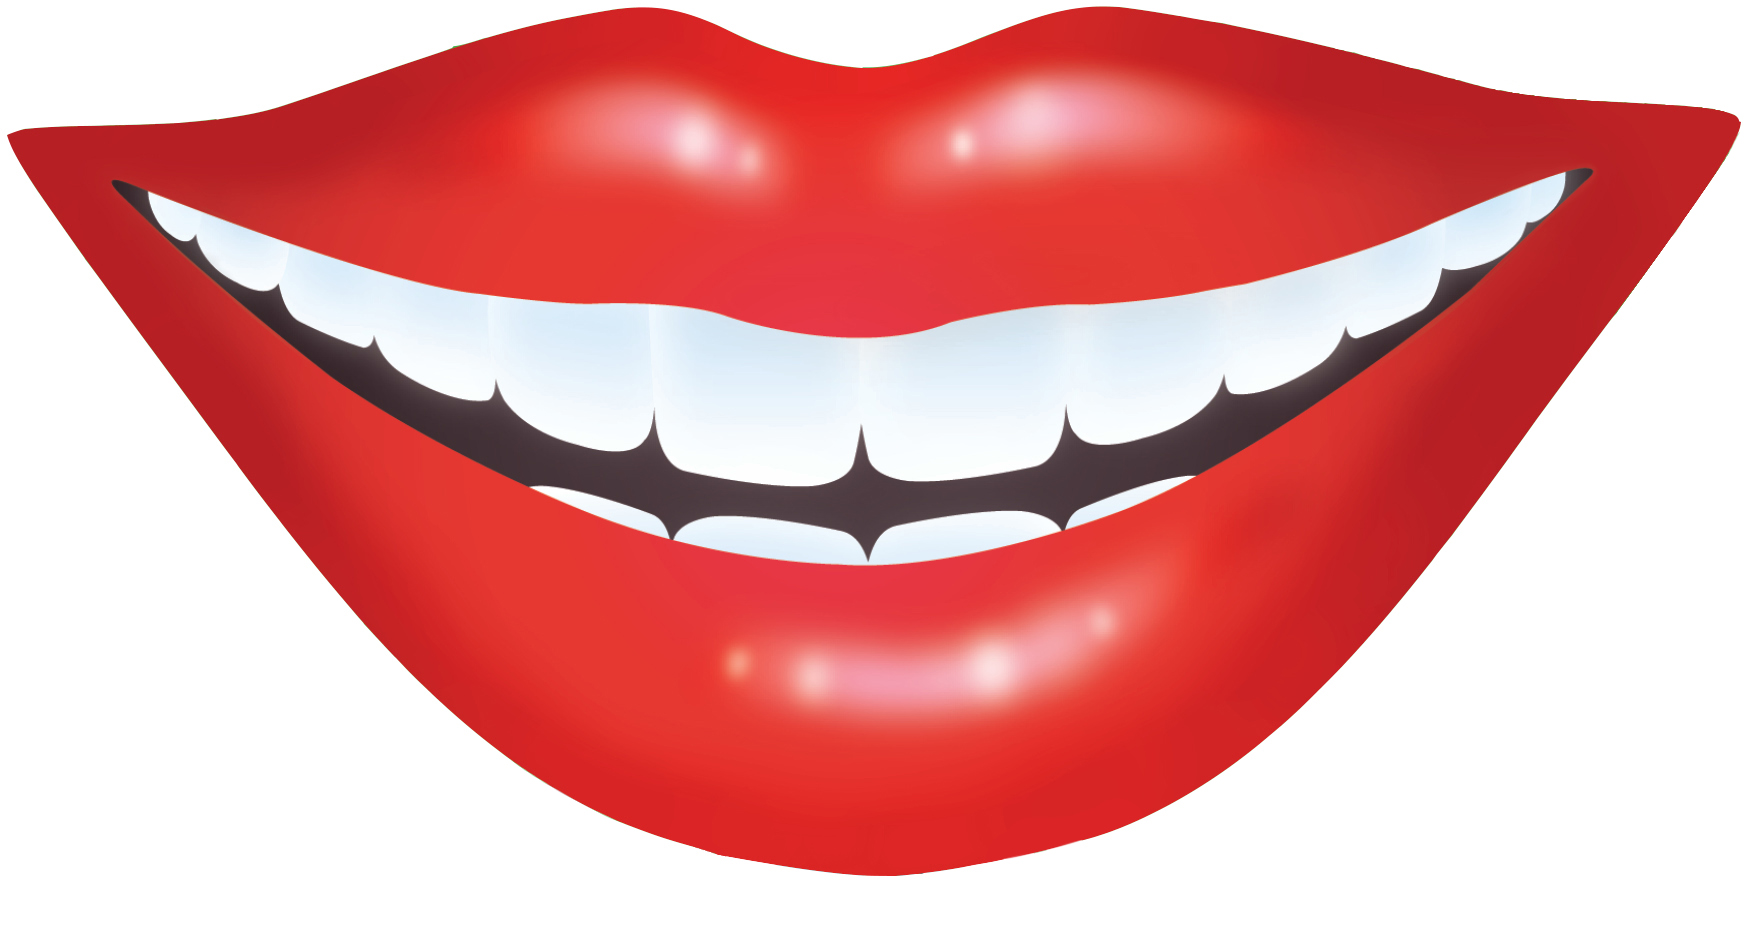 svg freeuse stock Free smile cliparting com. Smiling clipart red